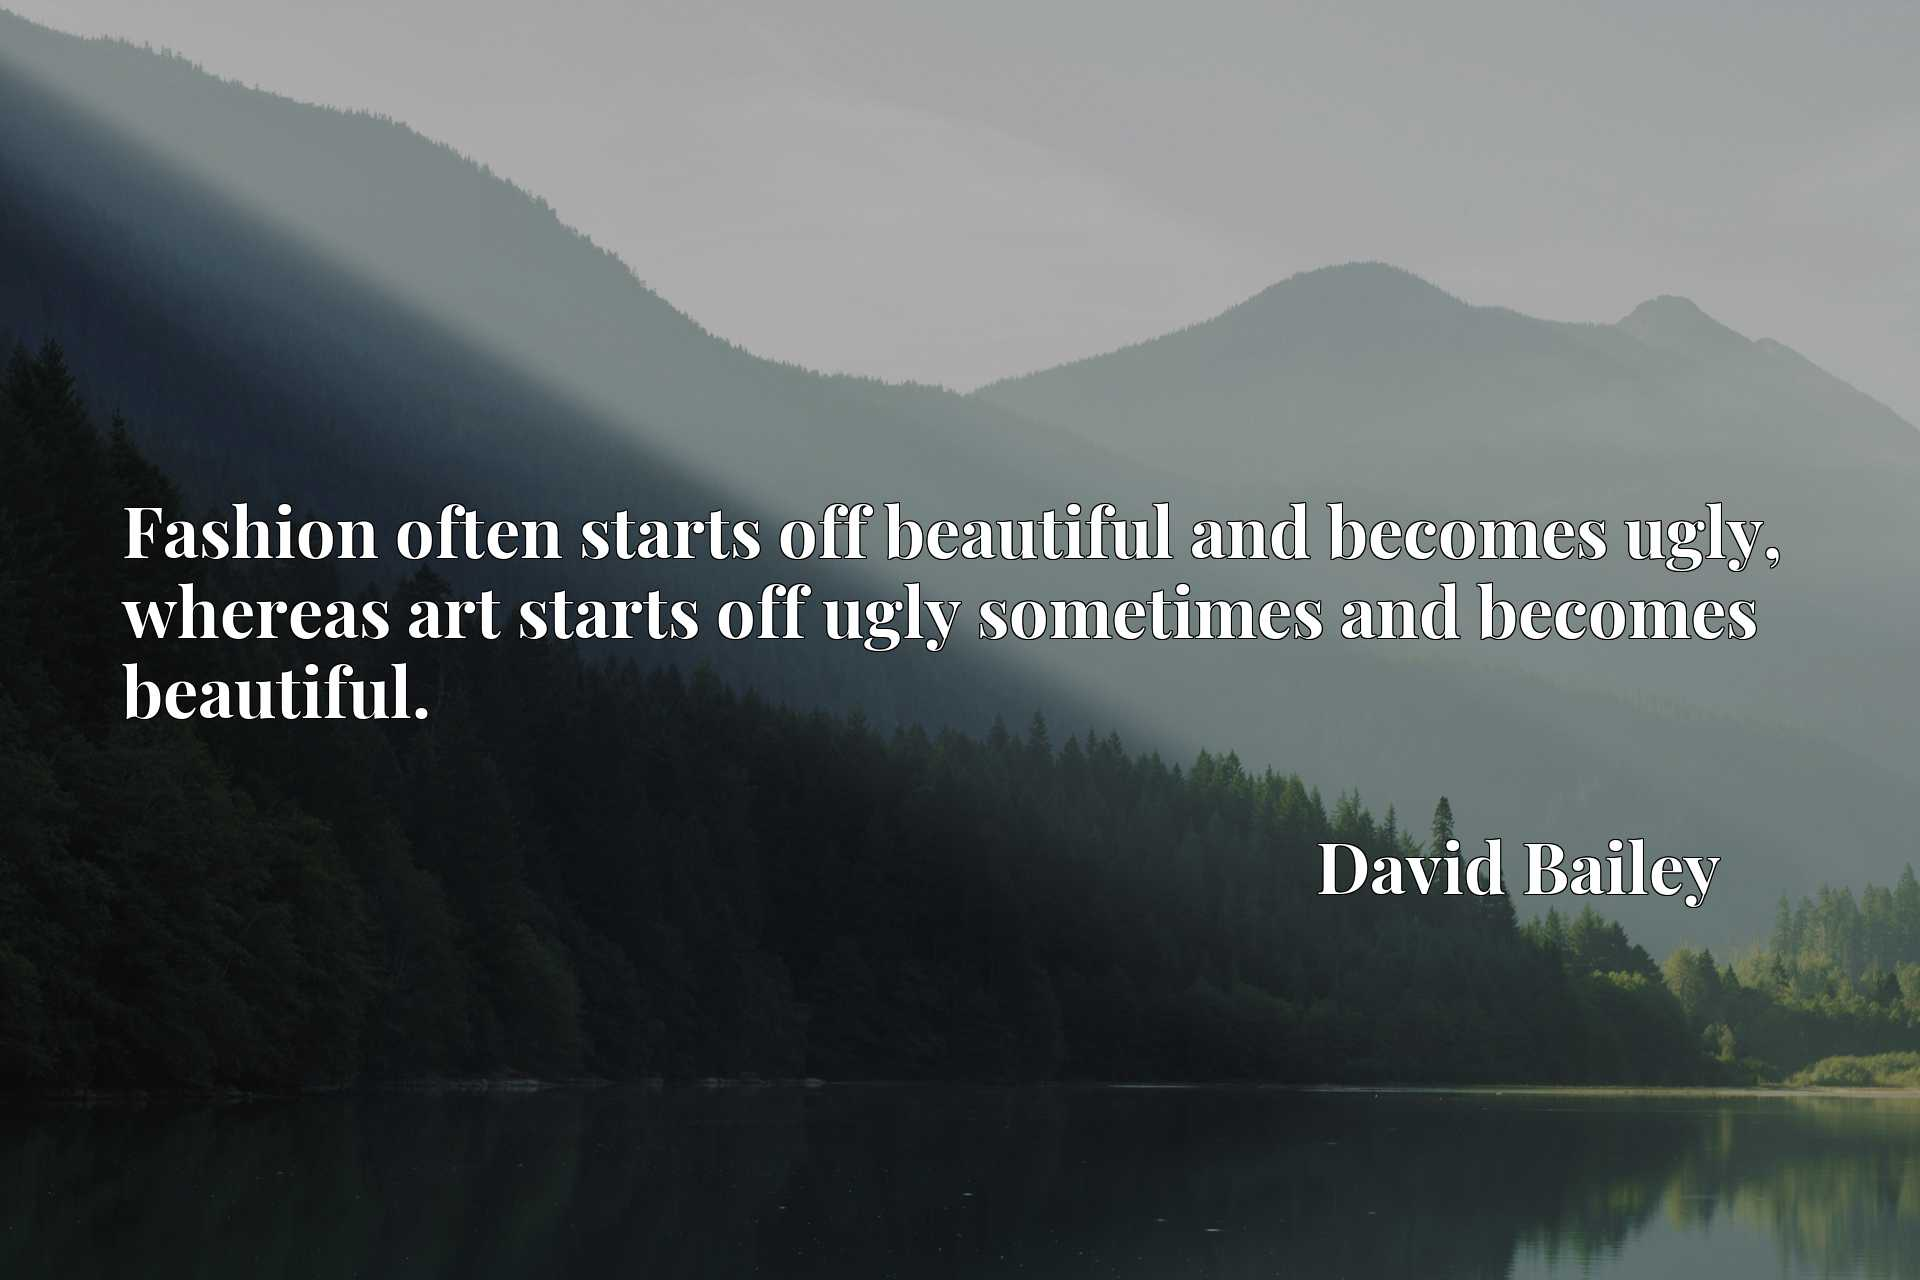 Fashion often starts off beautiful and becomes ugly, whereas art starts off ugly sometimes and becomes beautiful.